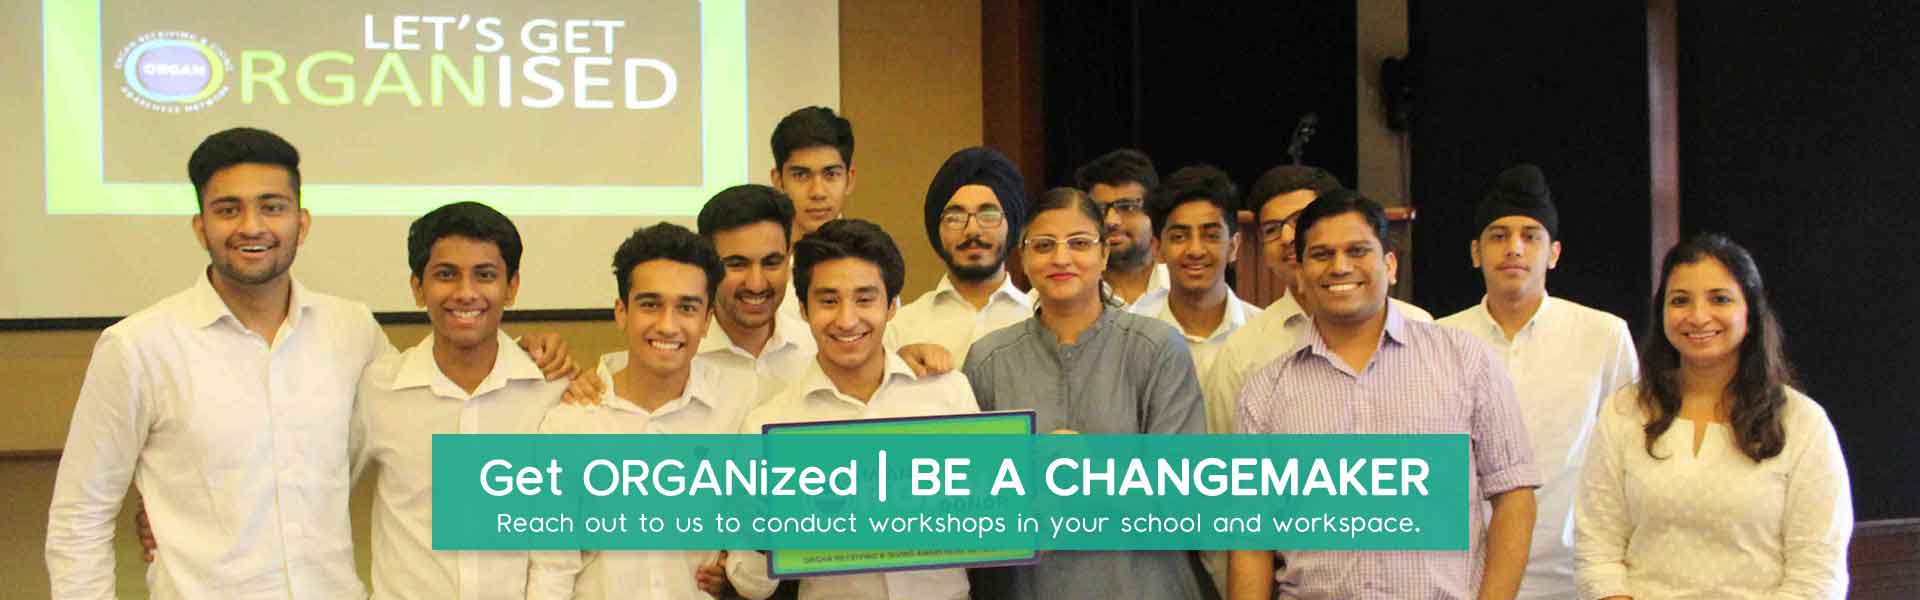 Get organized be a changemaker